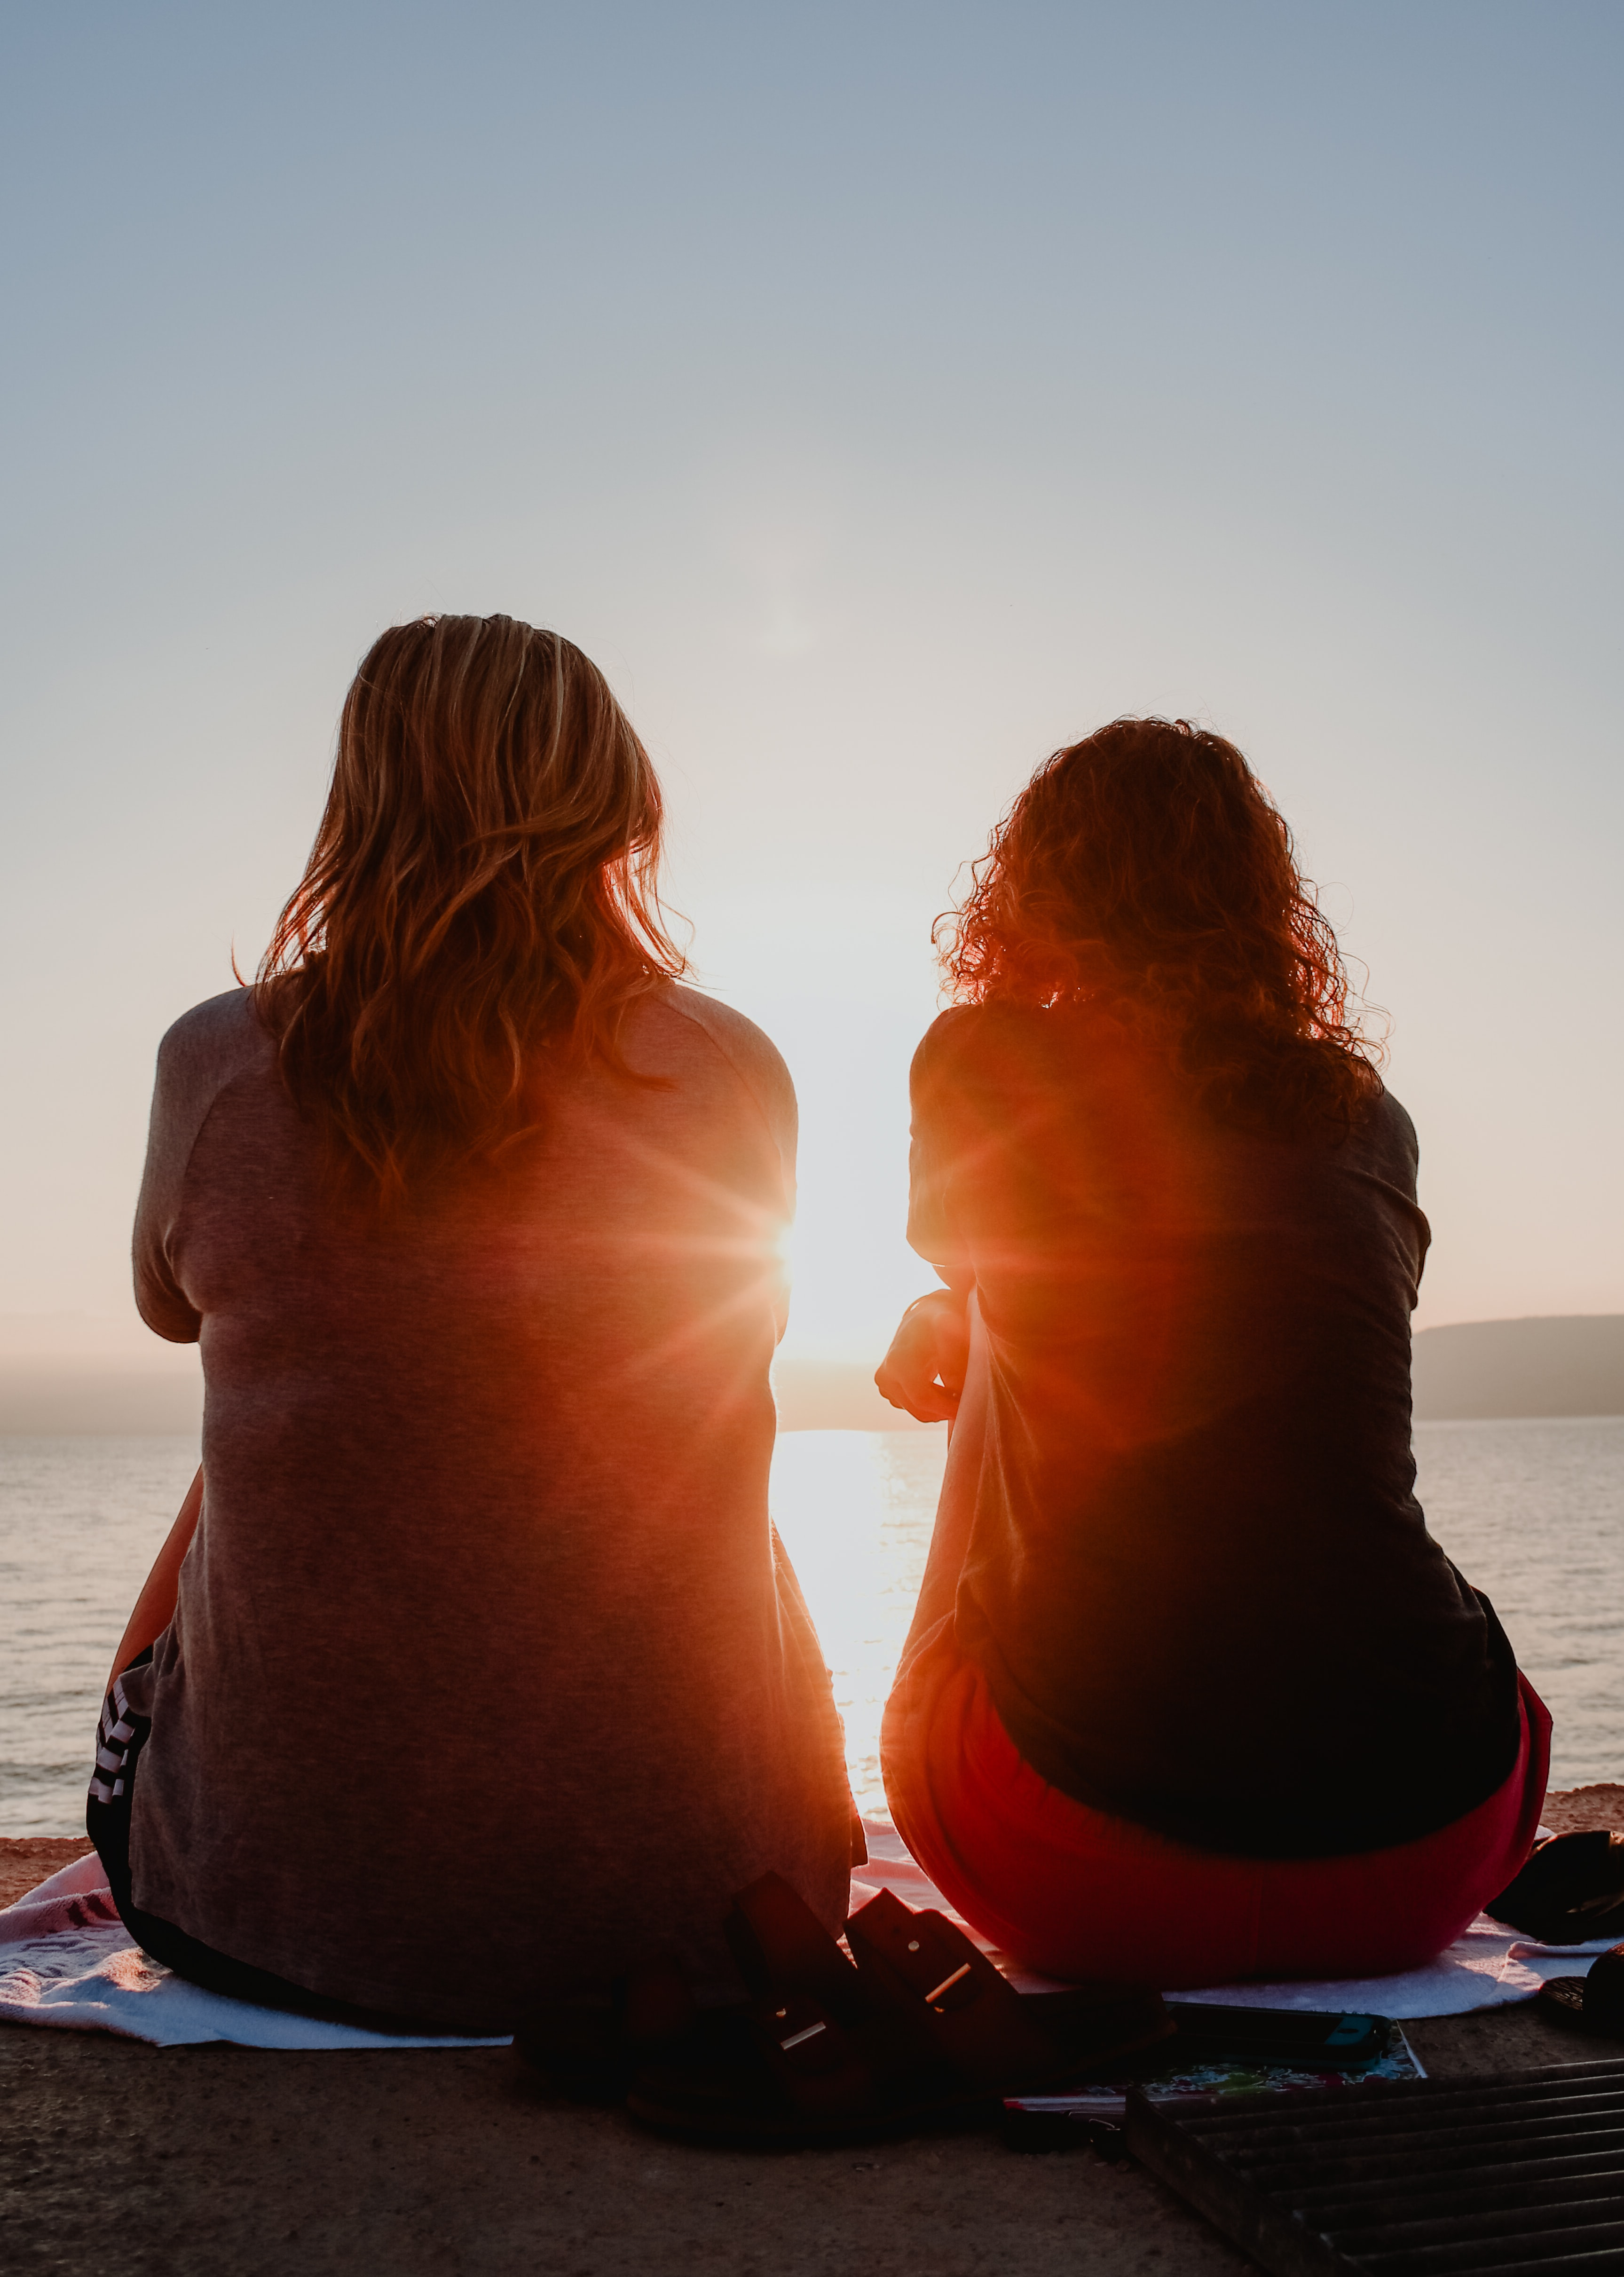 two woman sitting on beach sand while facing sunlight